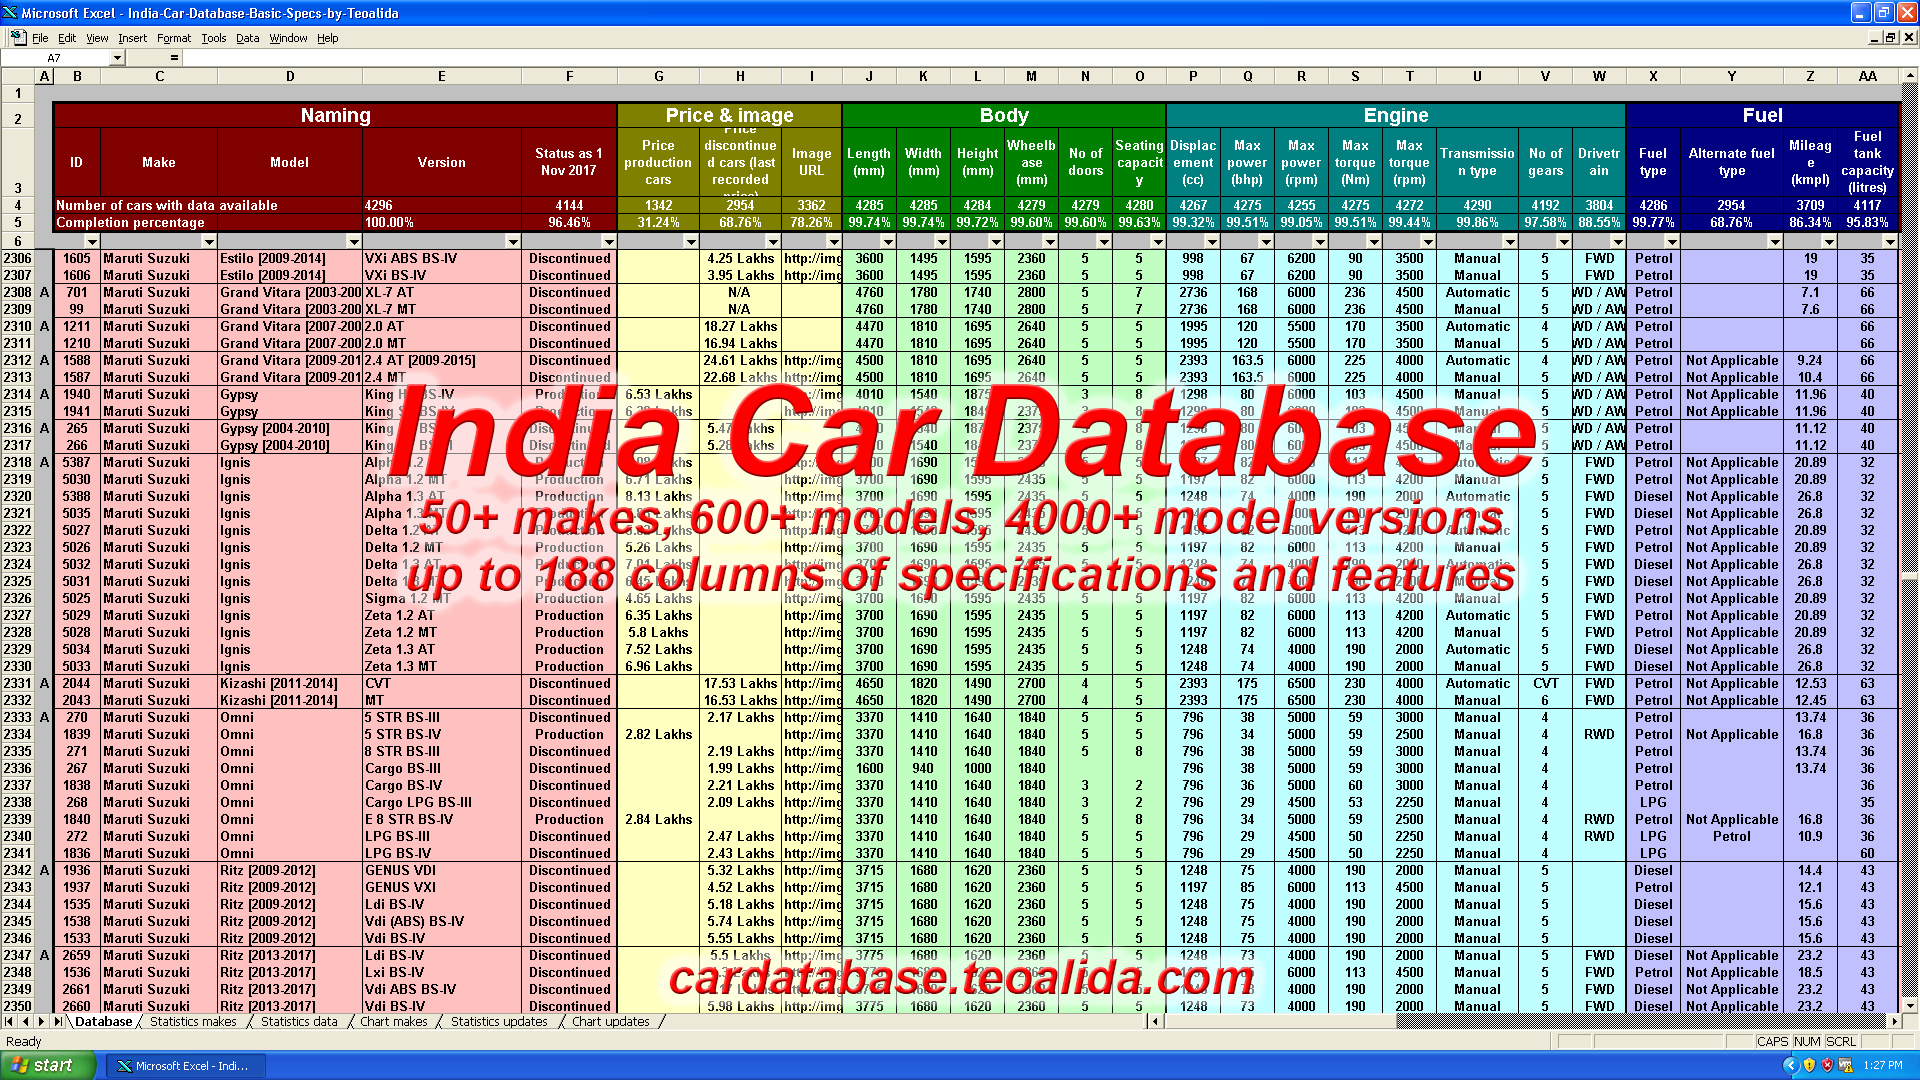 Ncci Edits 2018 Excel Spreadsheet Intended For Ncci Edits Excel Spreadsheet – Spreadsheet Collections